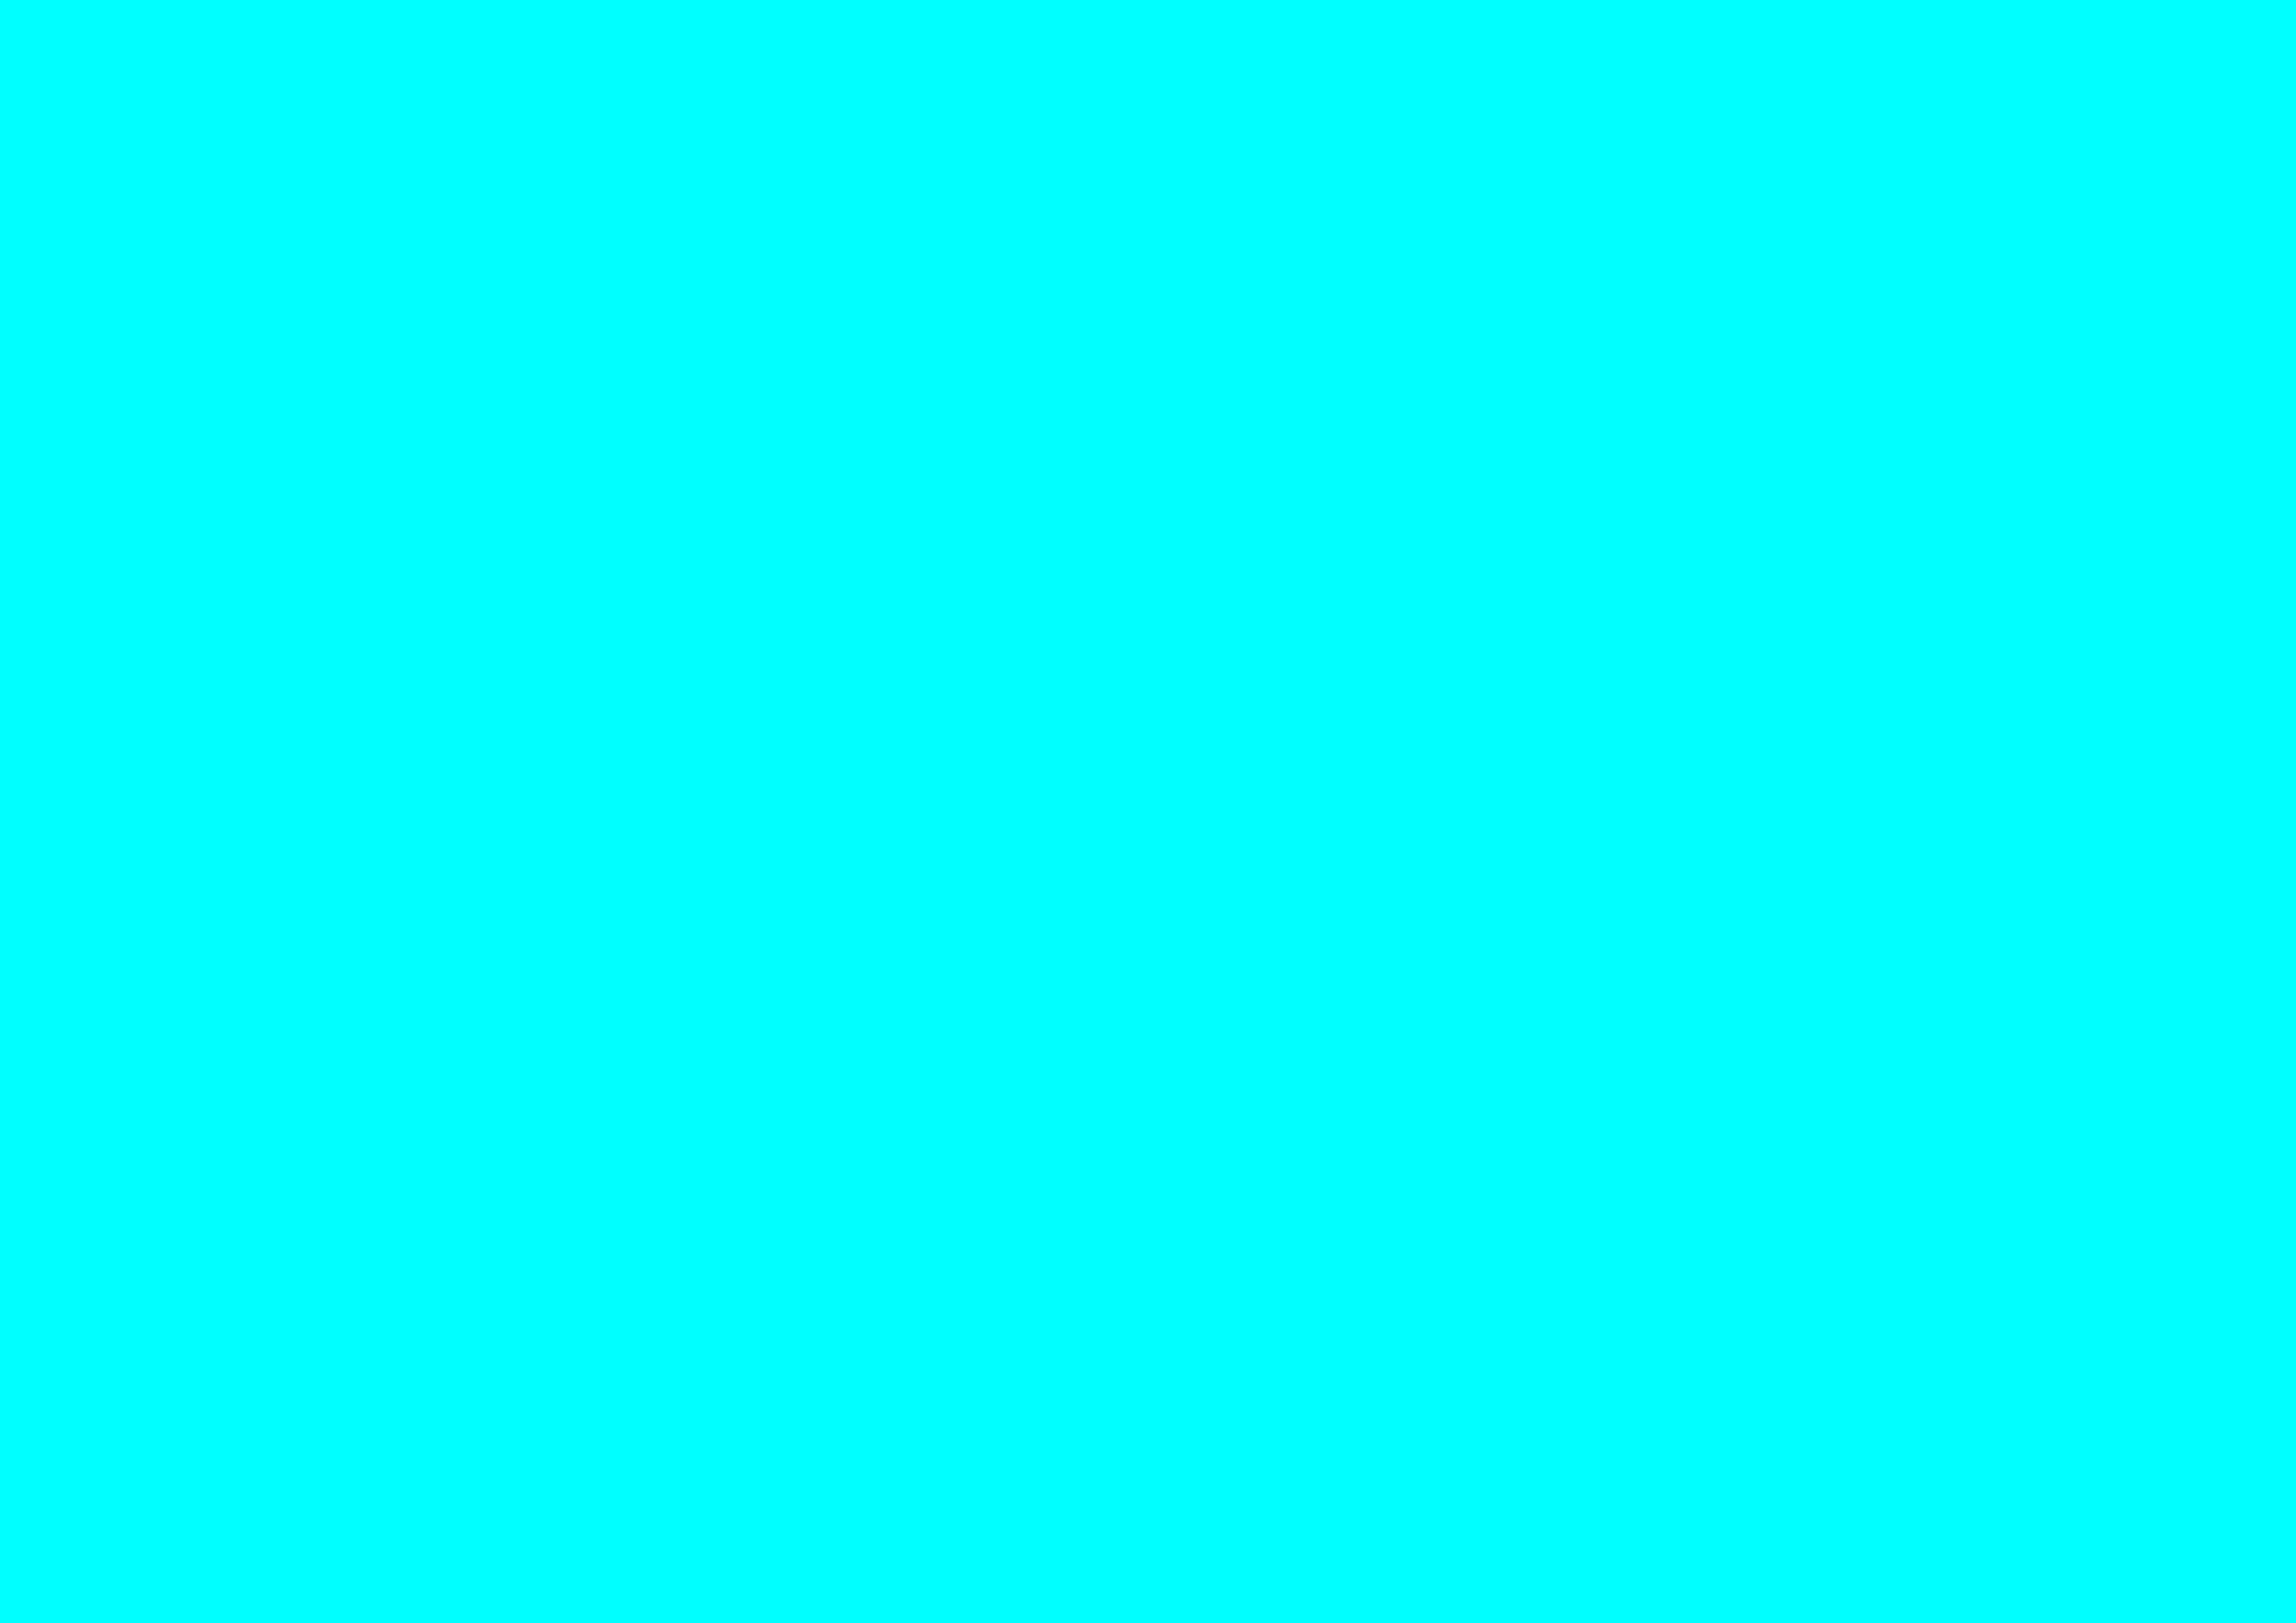 3508x2480 Cyan Solid Color Background